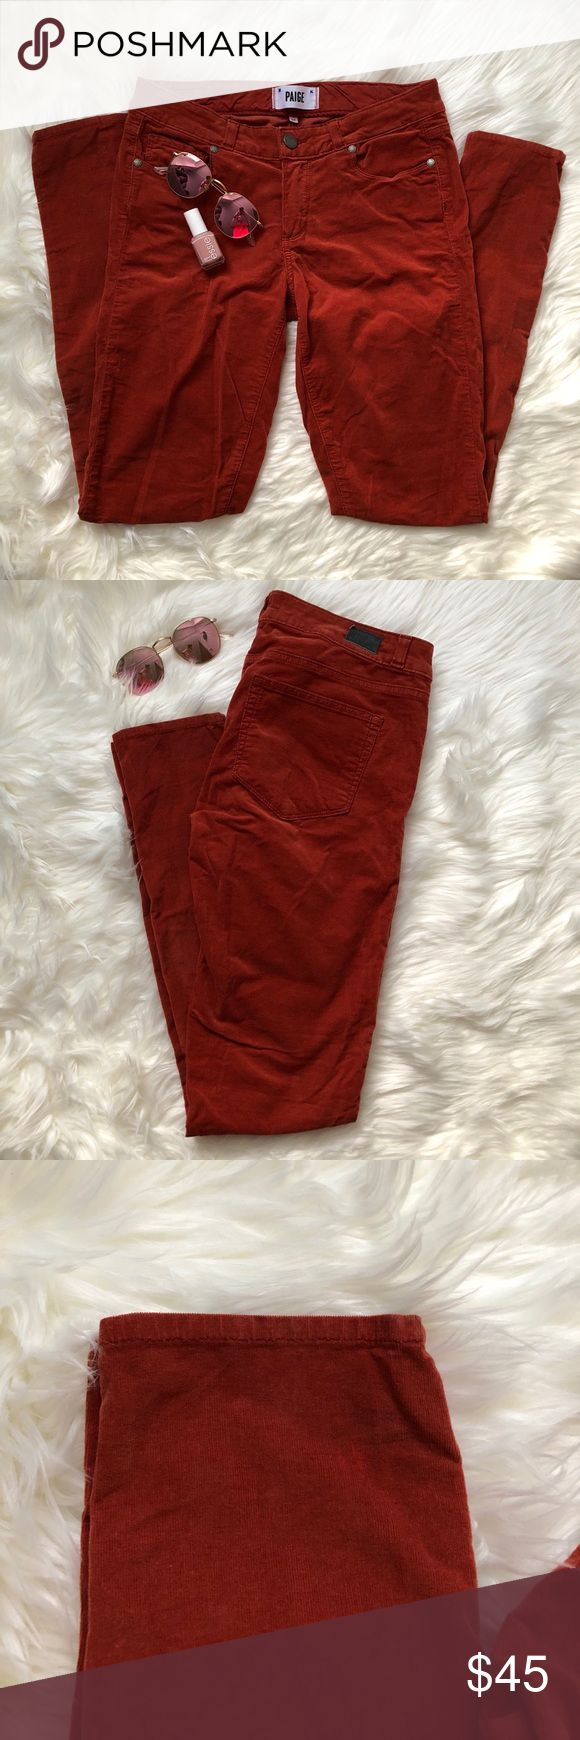 """Paige   burnt orange skinny jeans Paige 'verdugo ultra skinny"""" pants in burnt orange. Super soft material - made to look like corduroy pants. Perfect color for fall!!! Size 27. No faults or imperfections. PAIGE Pants Skinny"""